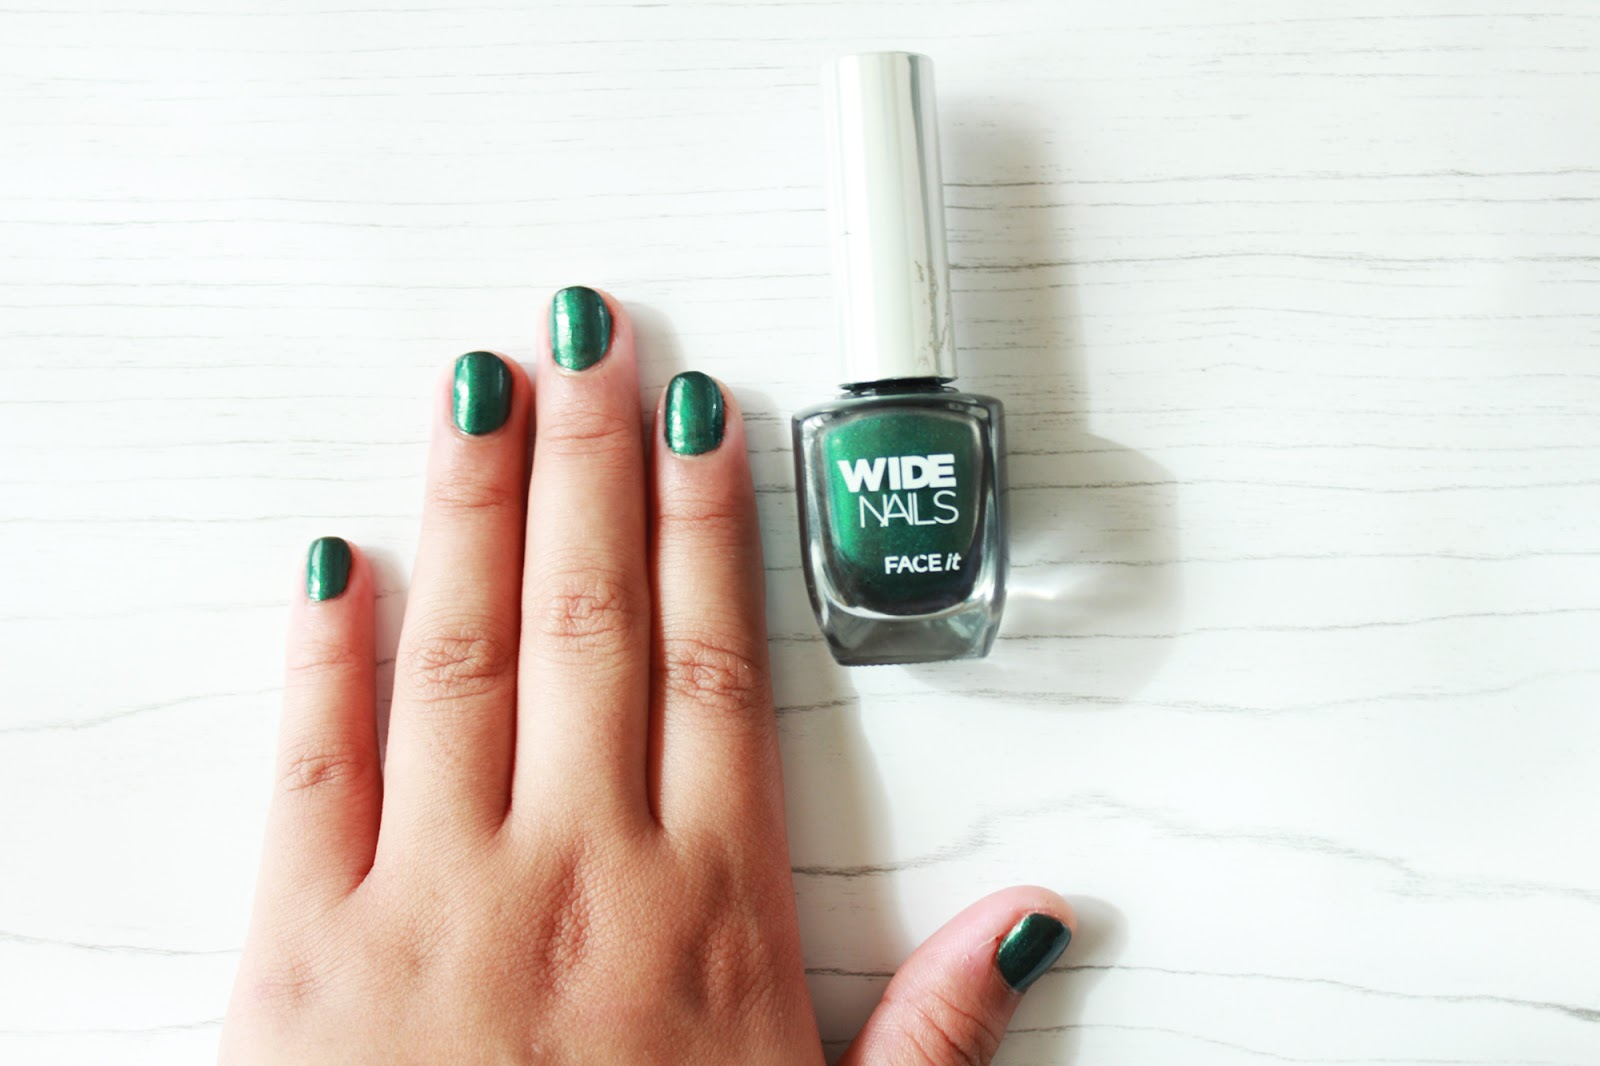 Nail of the Week: The Face Shop Wide Nails in GR503 - Shash Stash